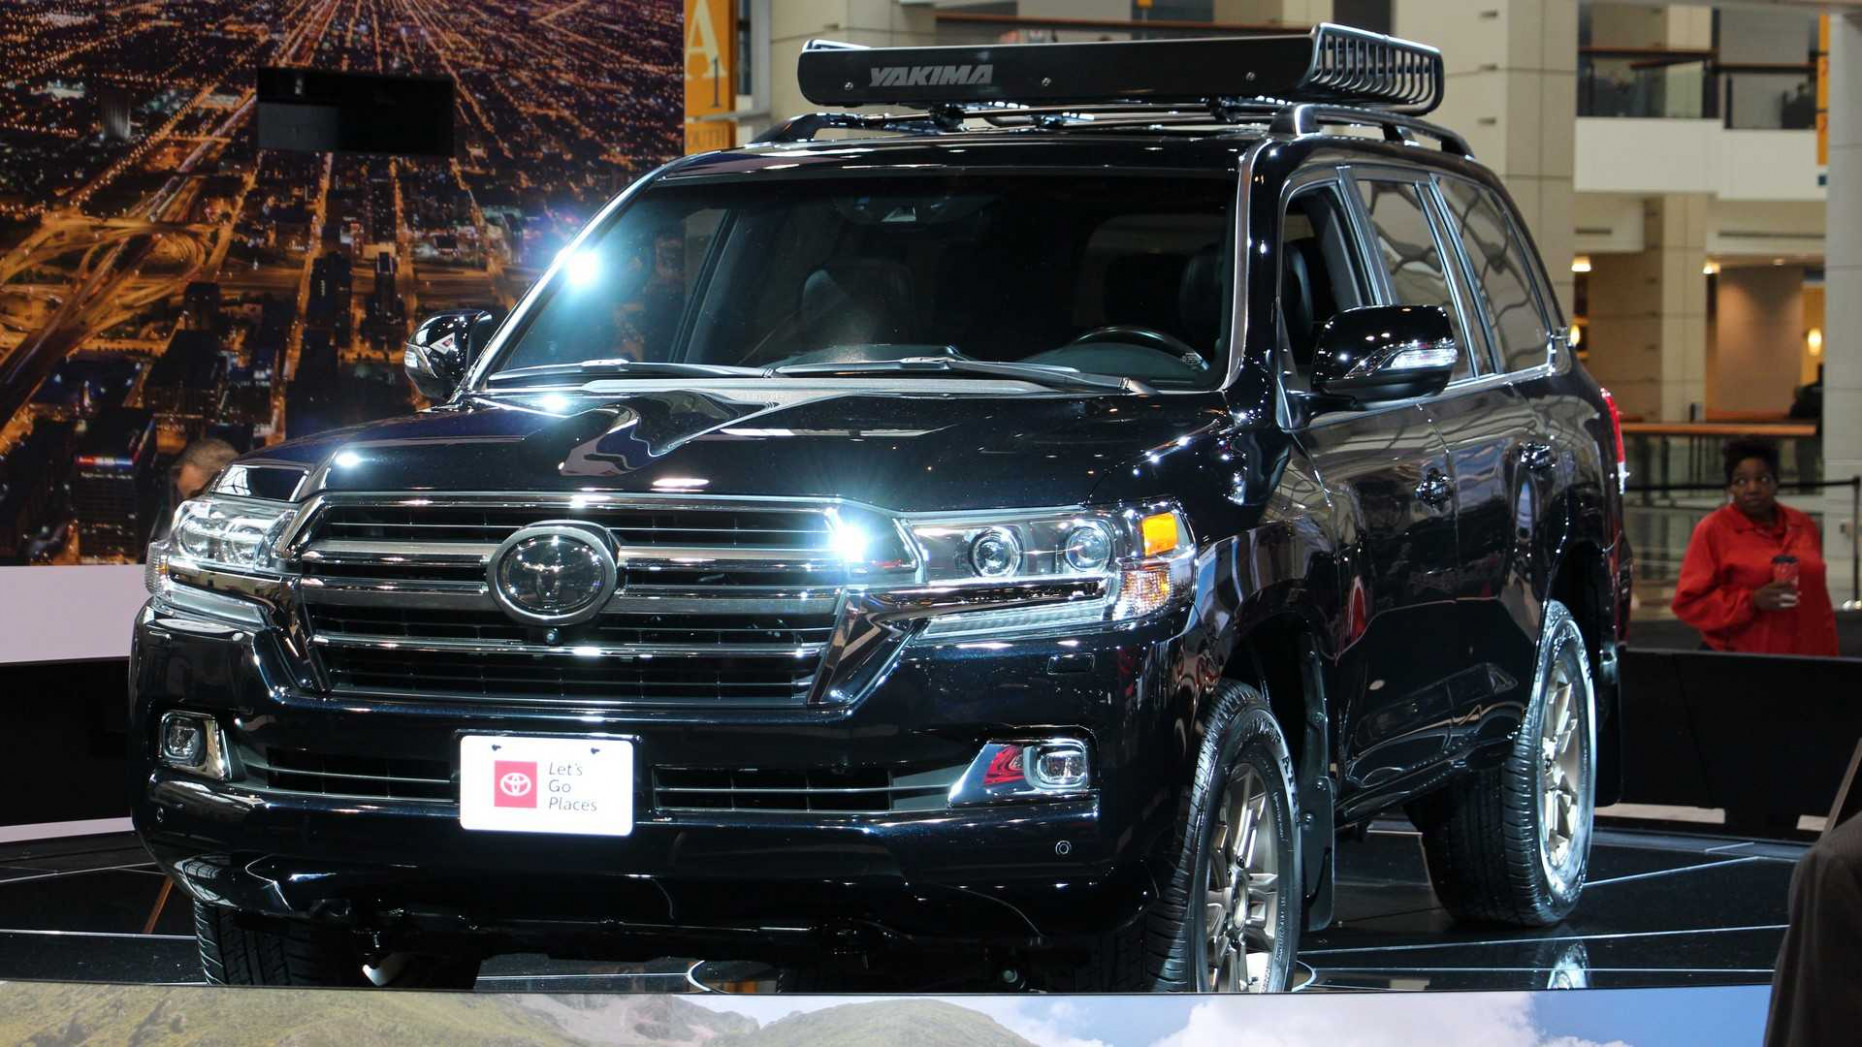 Toyota Land Cruiser To Lose V8 Engines For Next Generation? - 2020 toyota land cruiser towing capacity